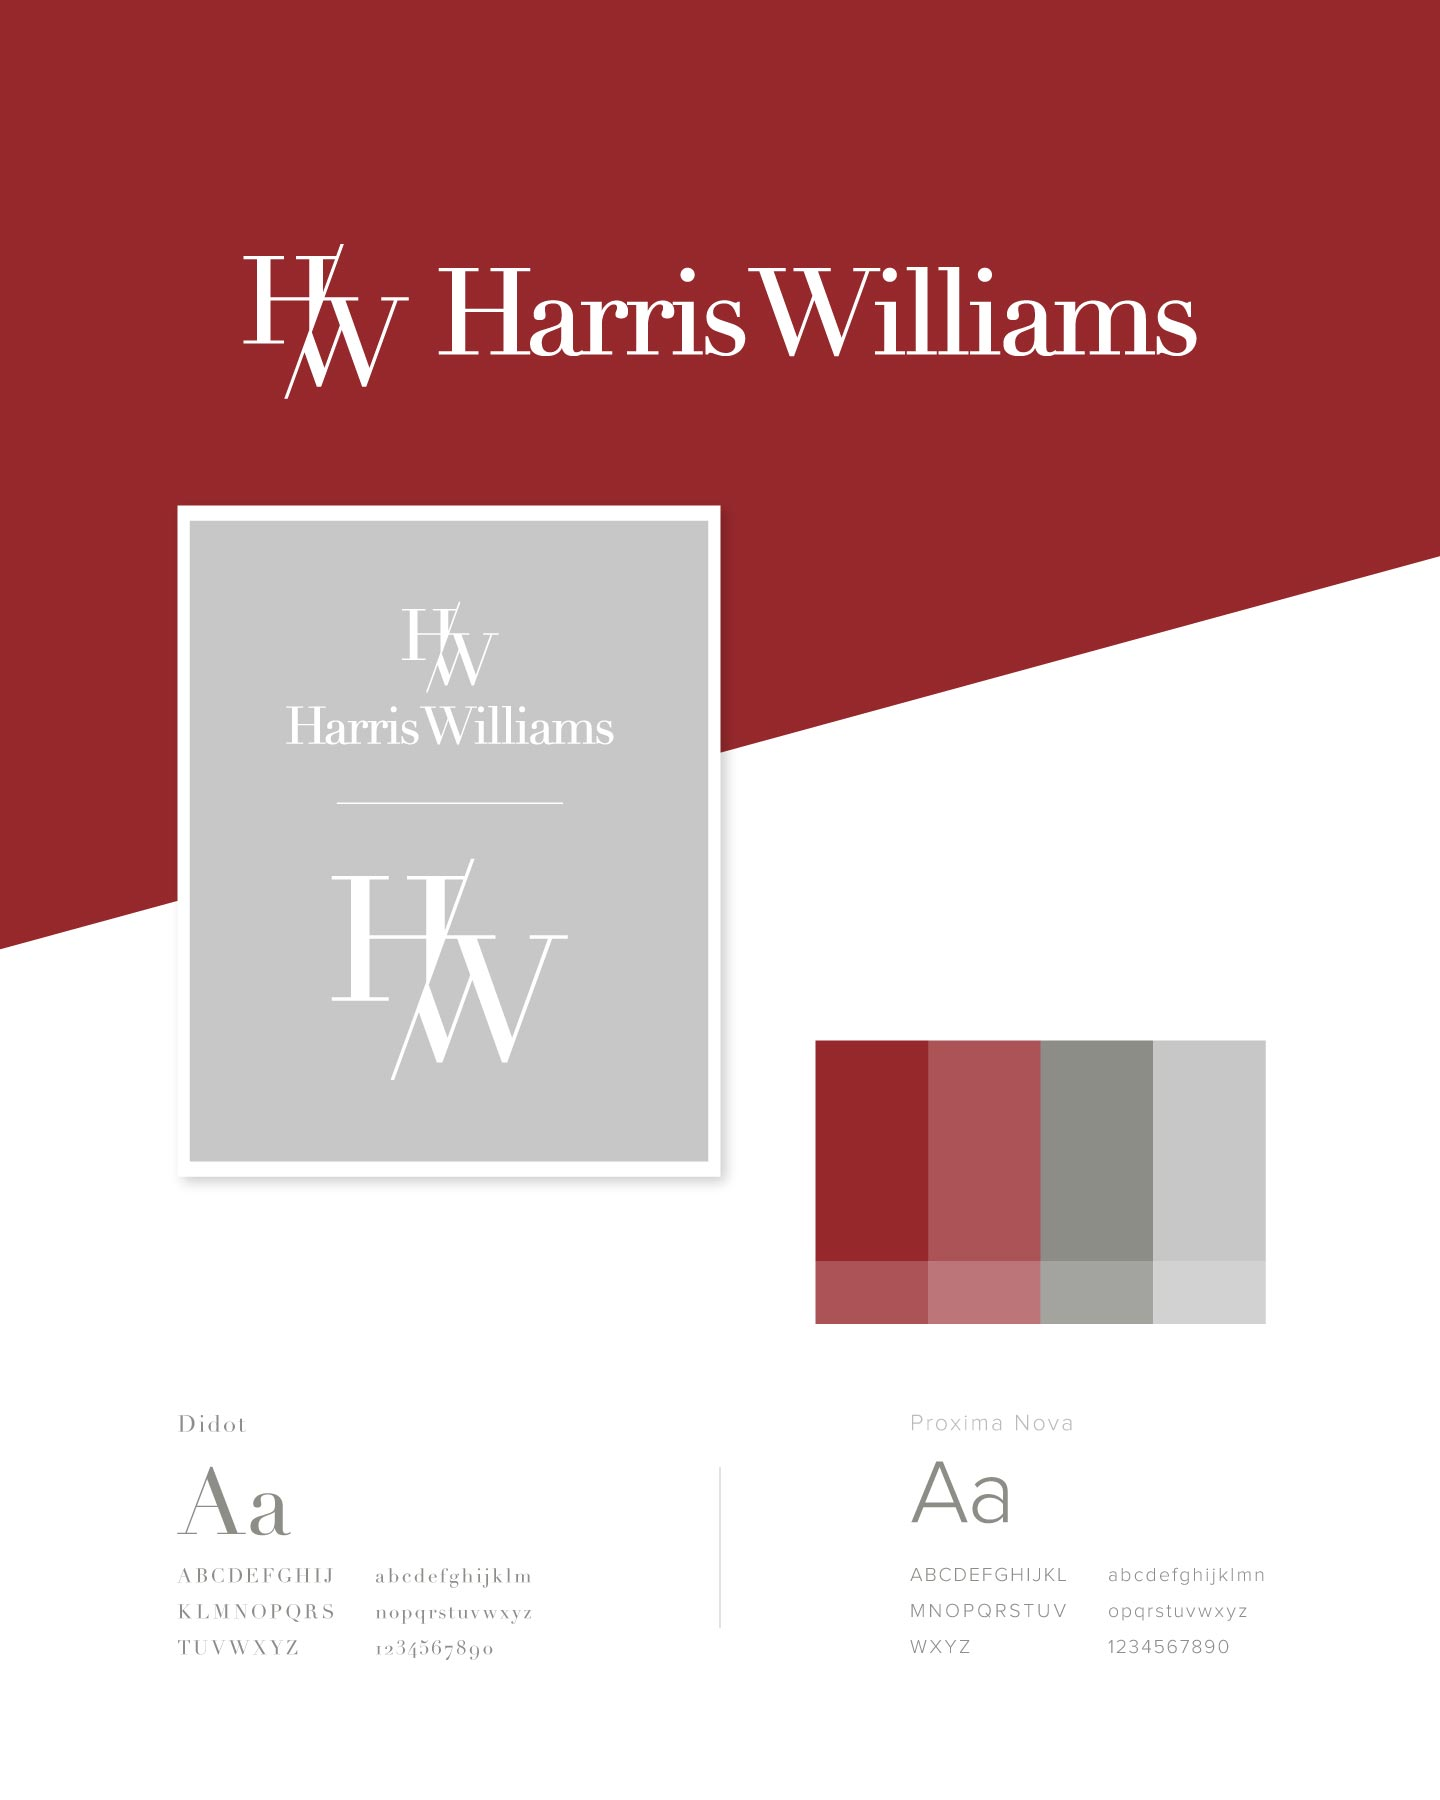 Logo, colors, and fonts for Harris Williams